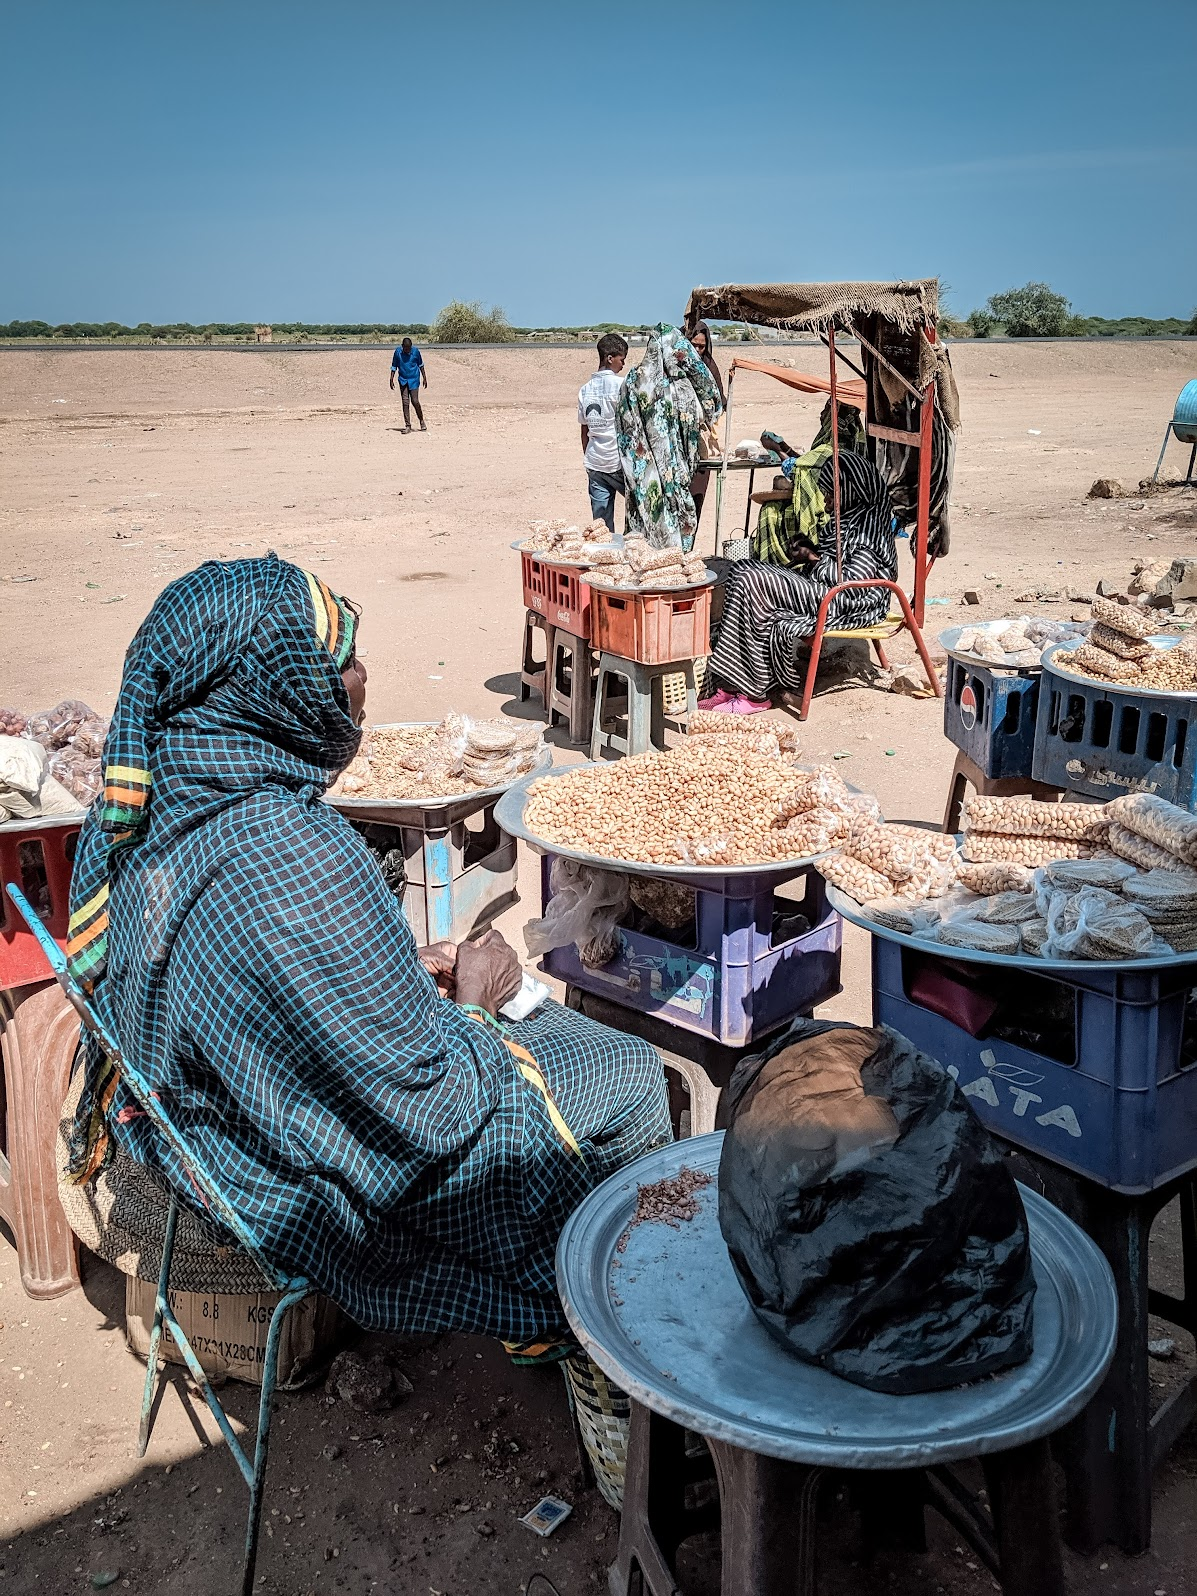 Peanut seller in Sudan